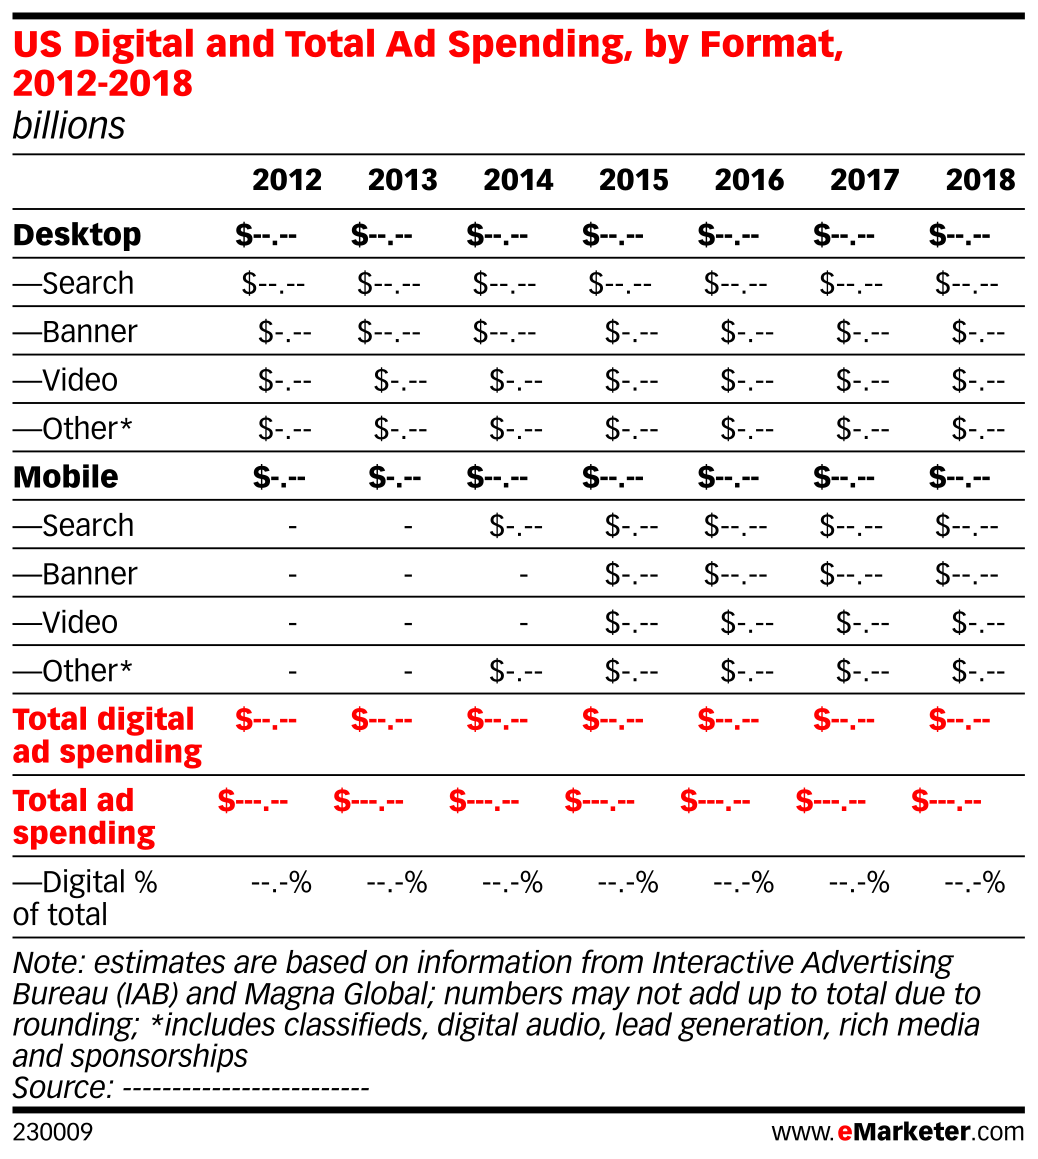 US Digital and Total Ad Spending, by Format, 2012-2018 (billions)